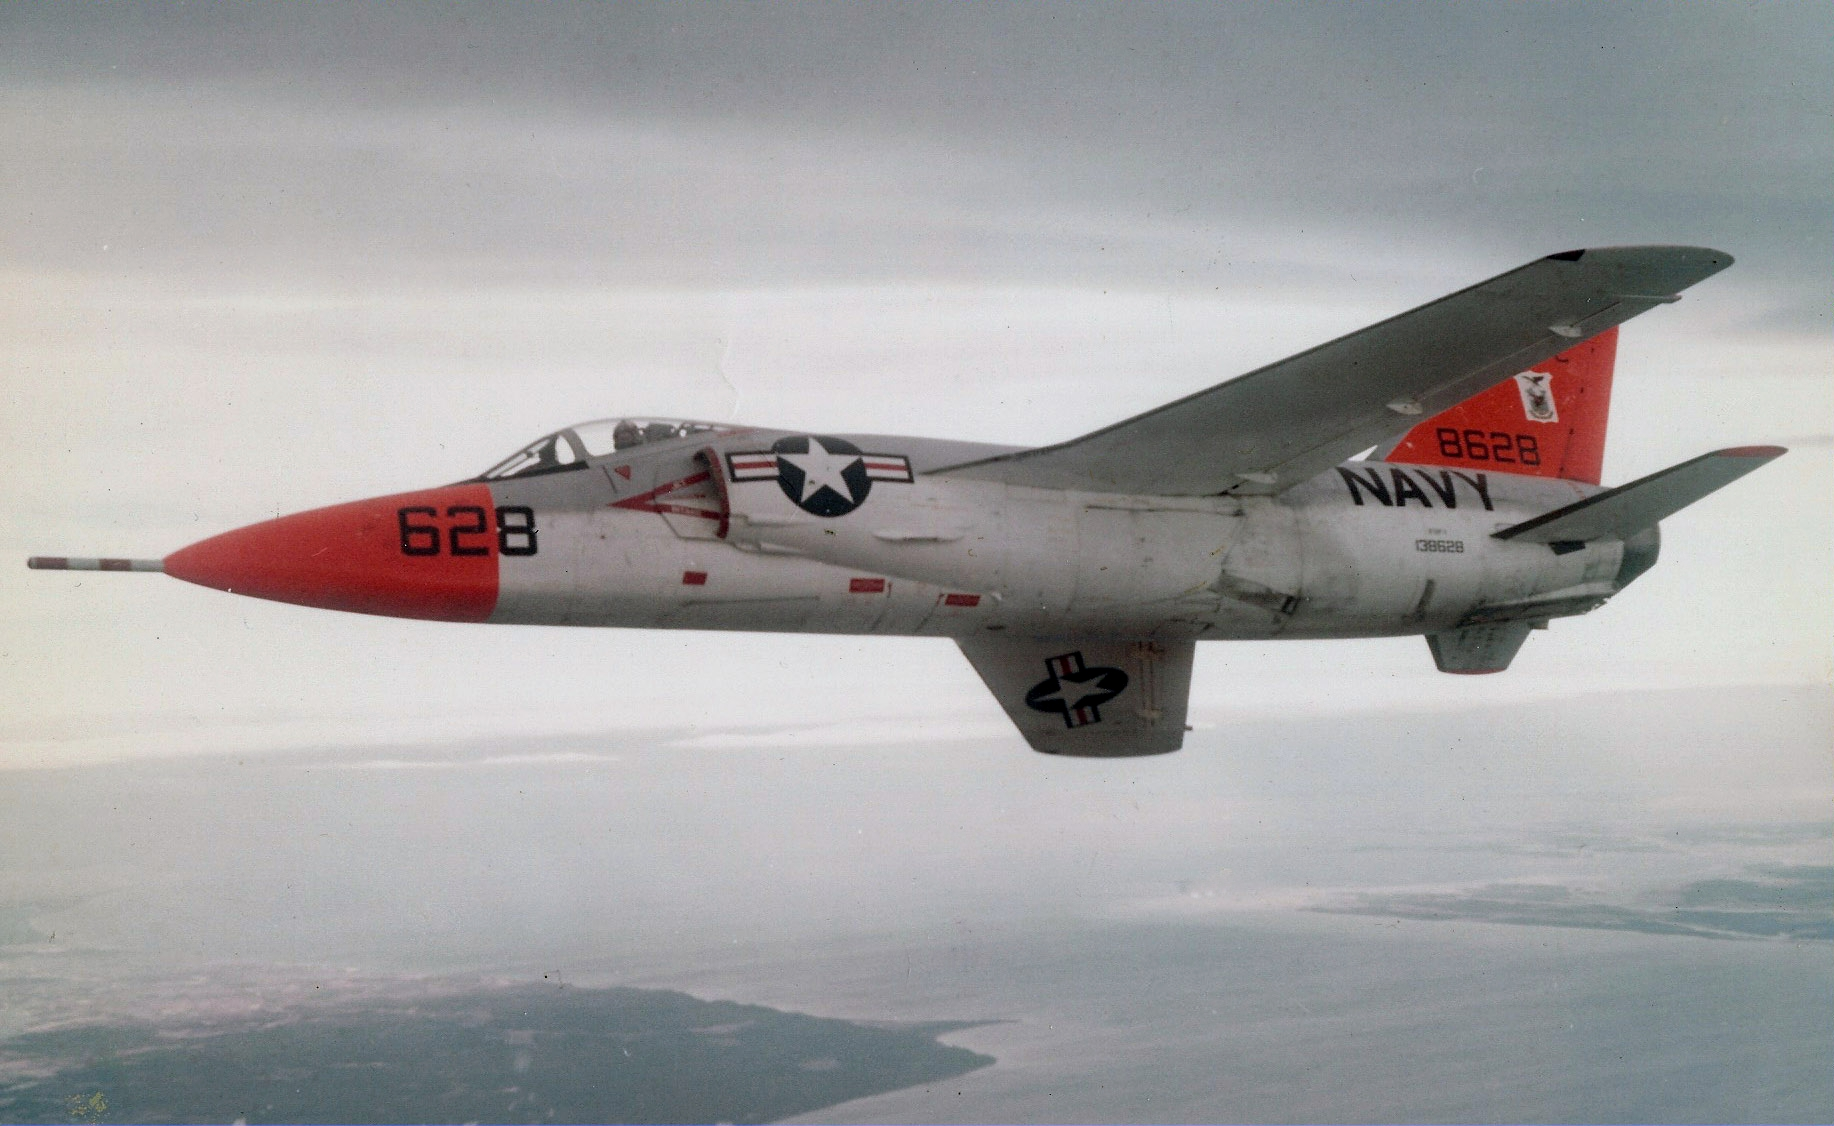 File:Grumman F11F-1 Tiger in flight c1950s.jpg - Wikimedia ...